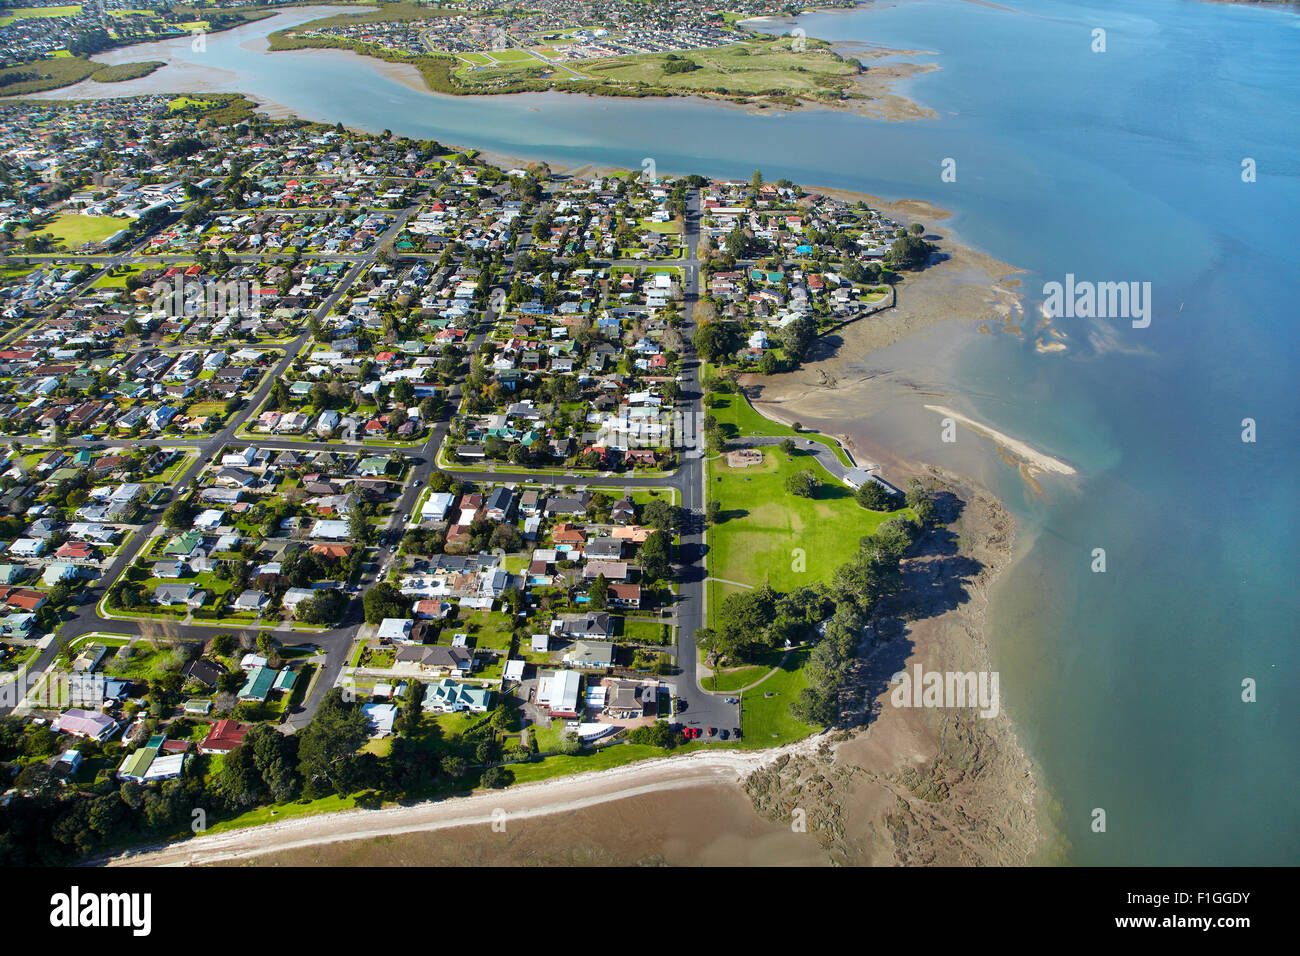 Keith Park, Weymouth, and Manukau Harbour, Auckland, North Island, New Zealand - aerial - Stock Image